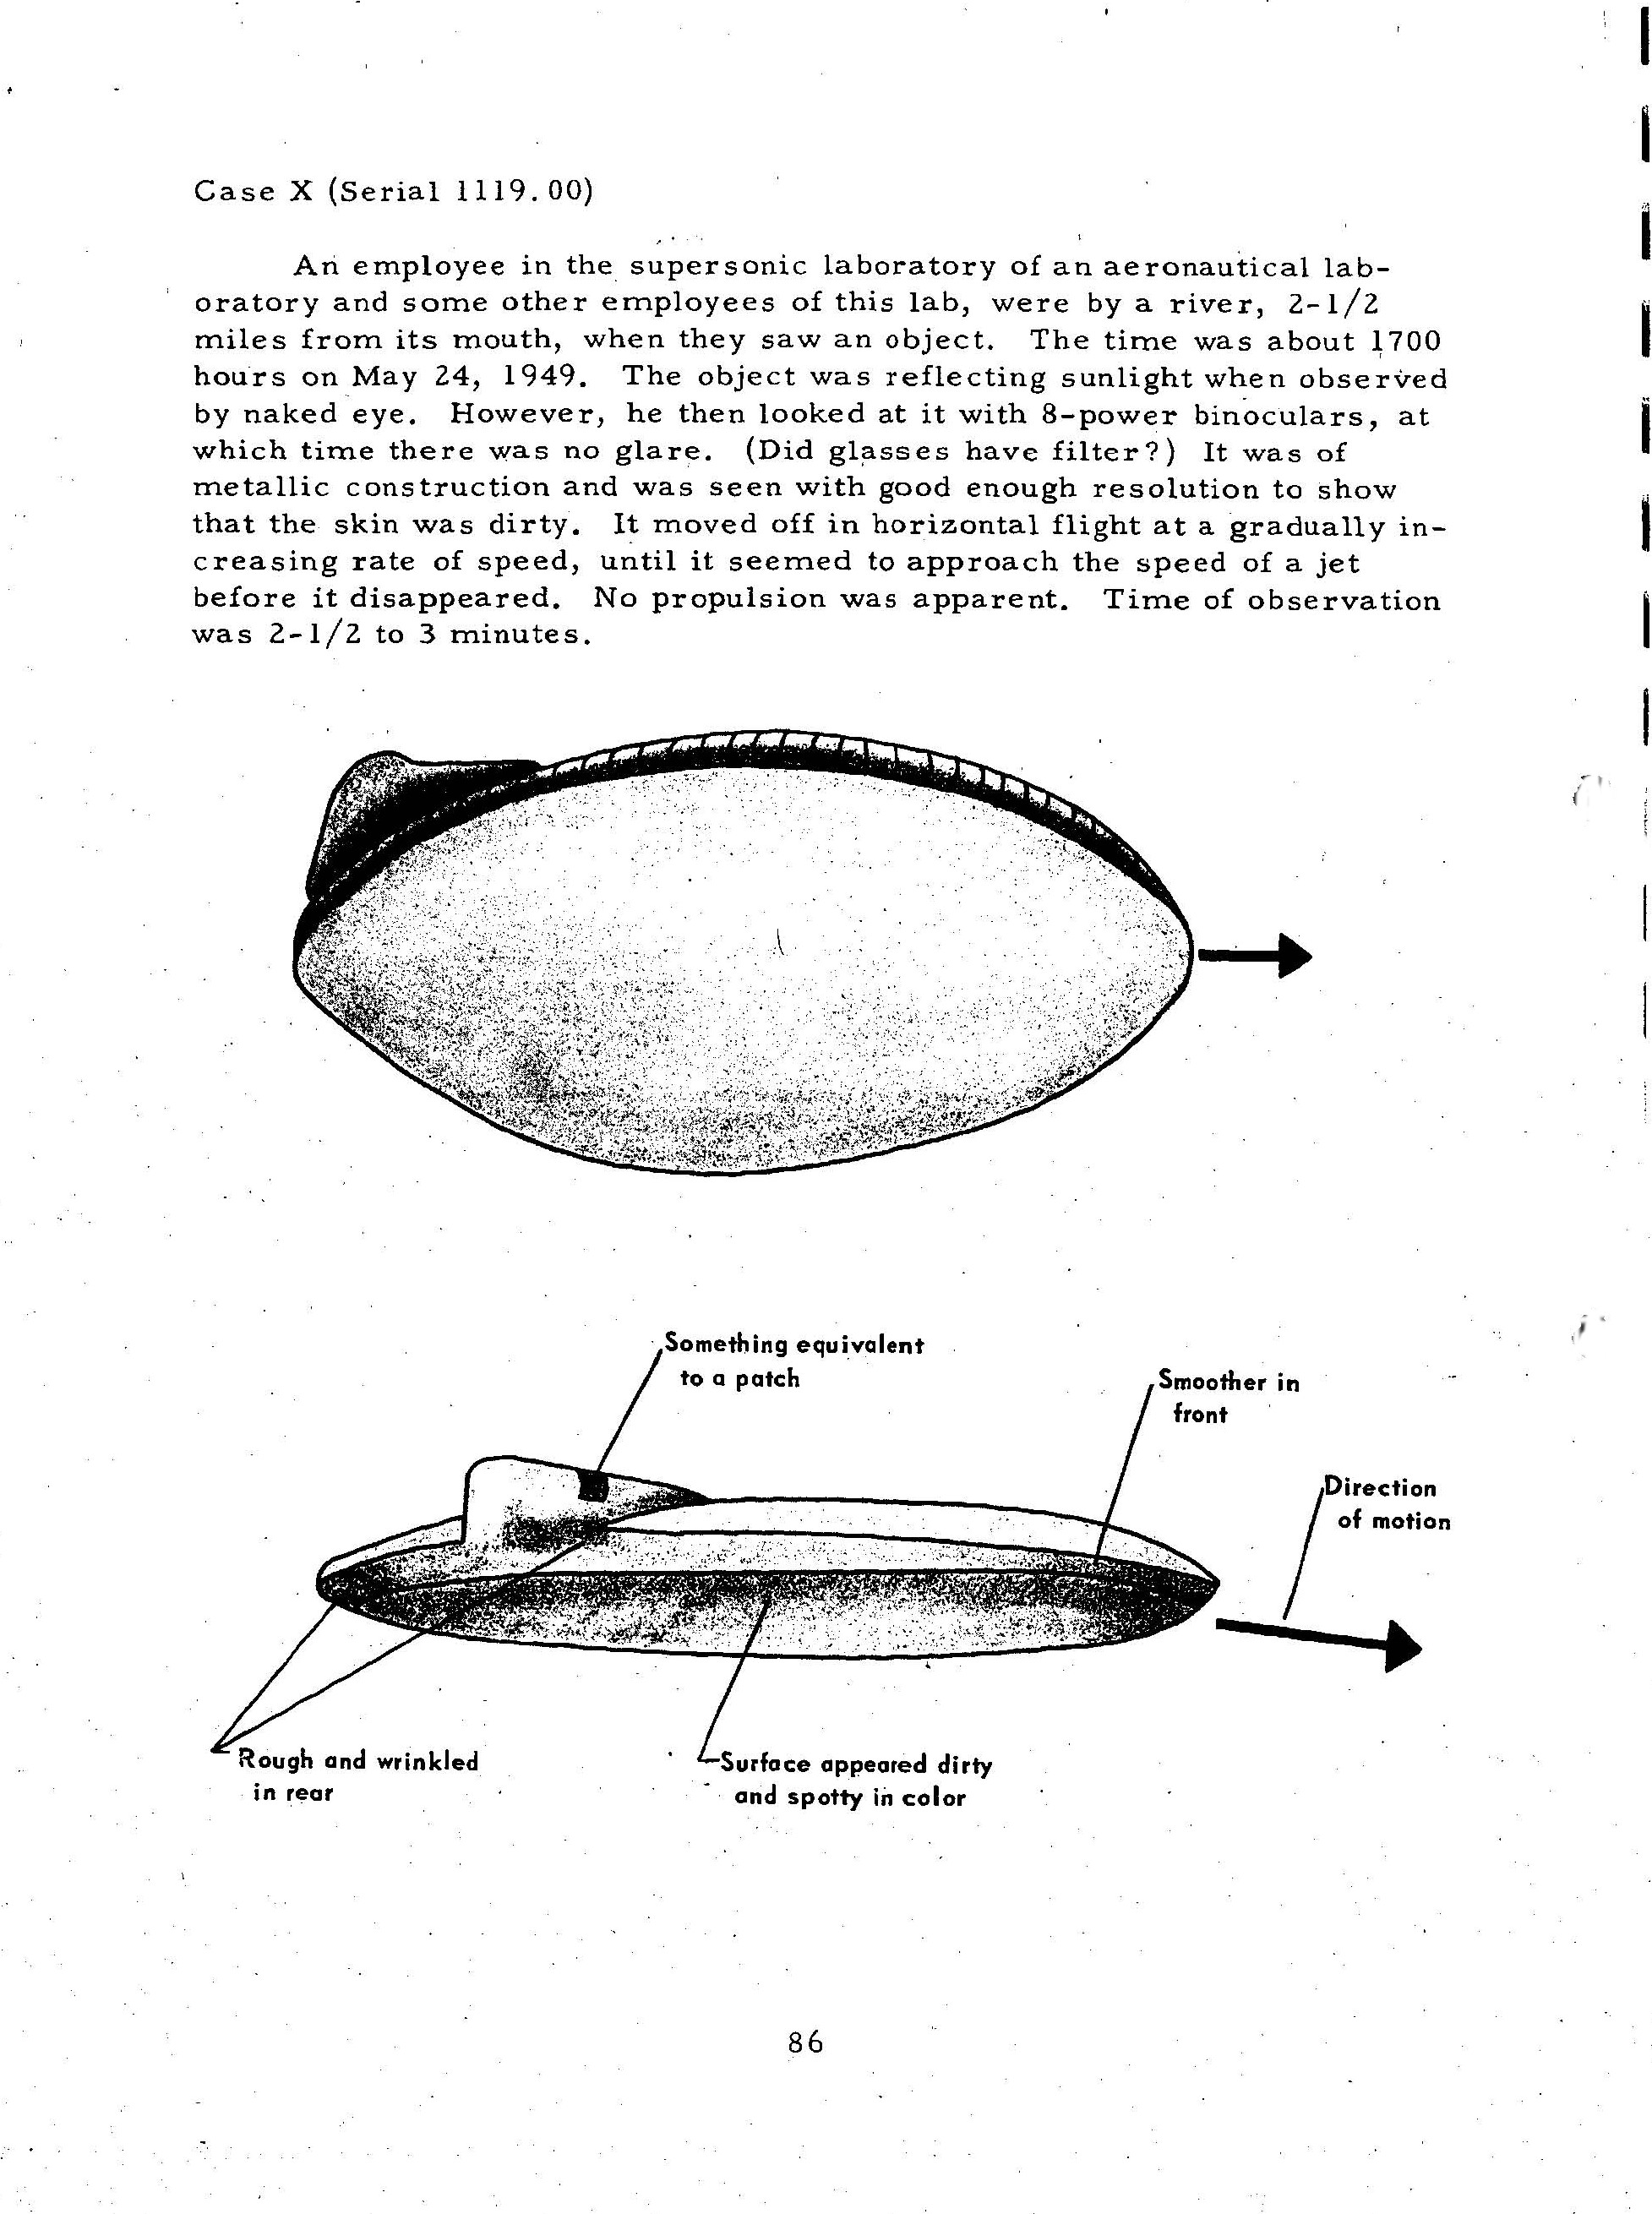 Project Blue Book: US Air Force UFO documents revealed - BBC News